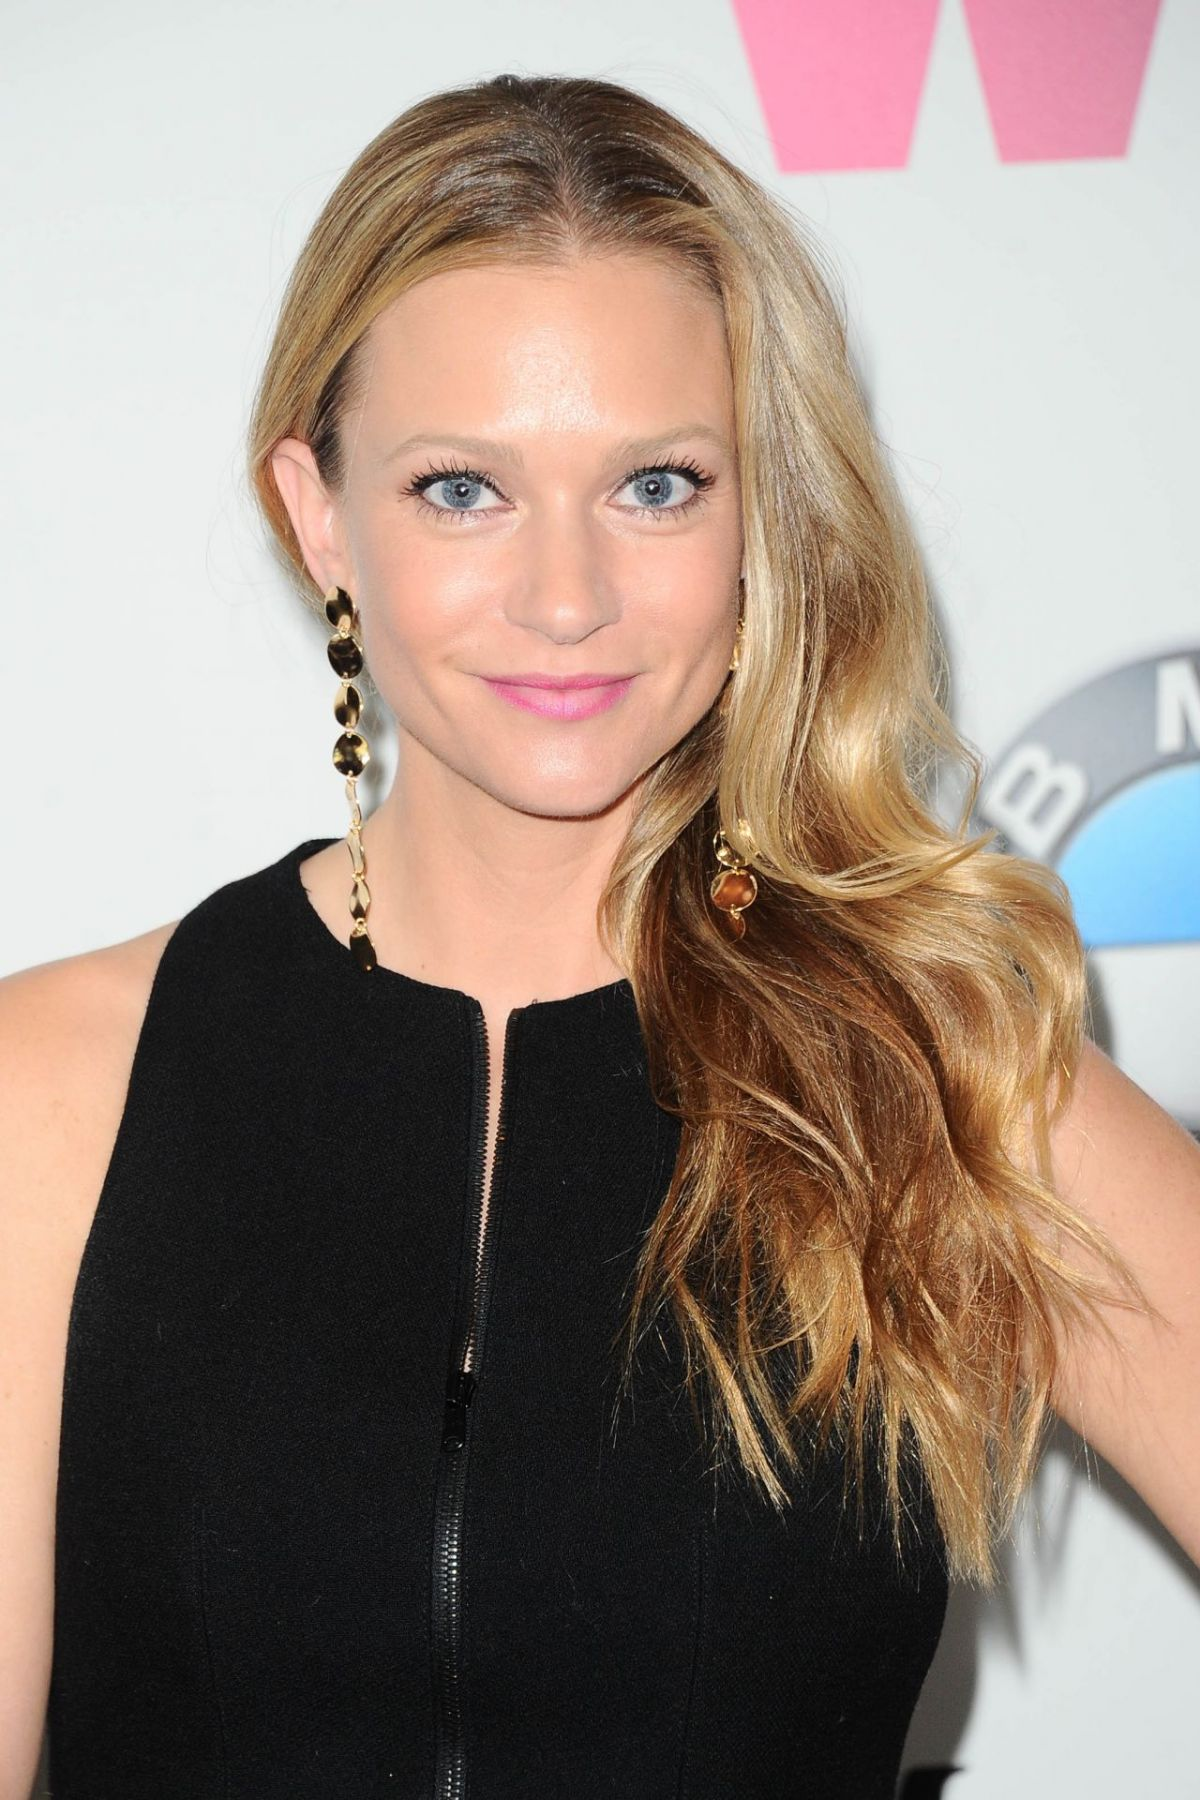 AJ Cook Biography Wiki, Bio, Age, Height, Weight, Facts